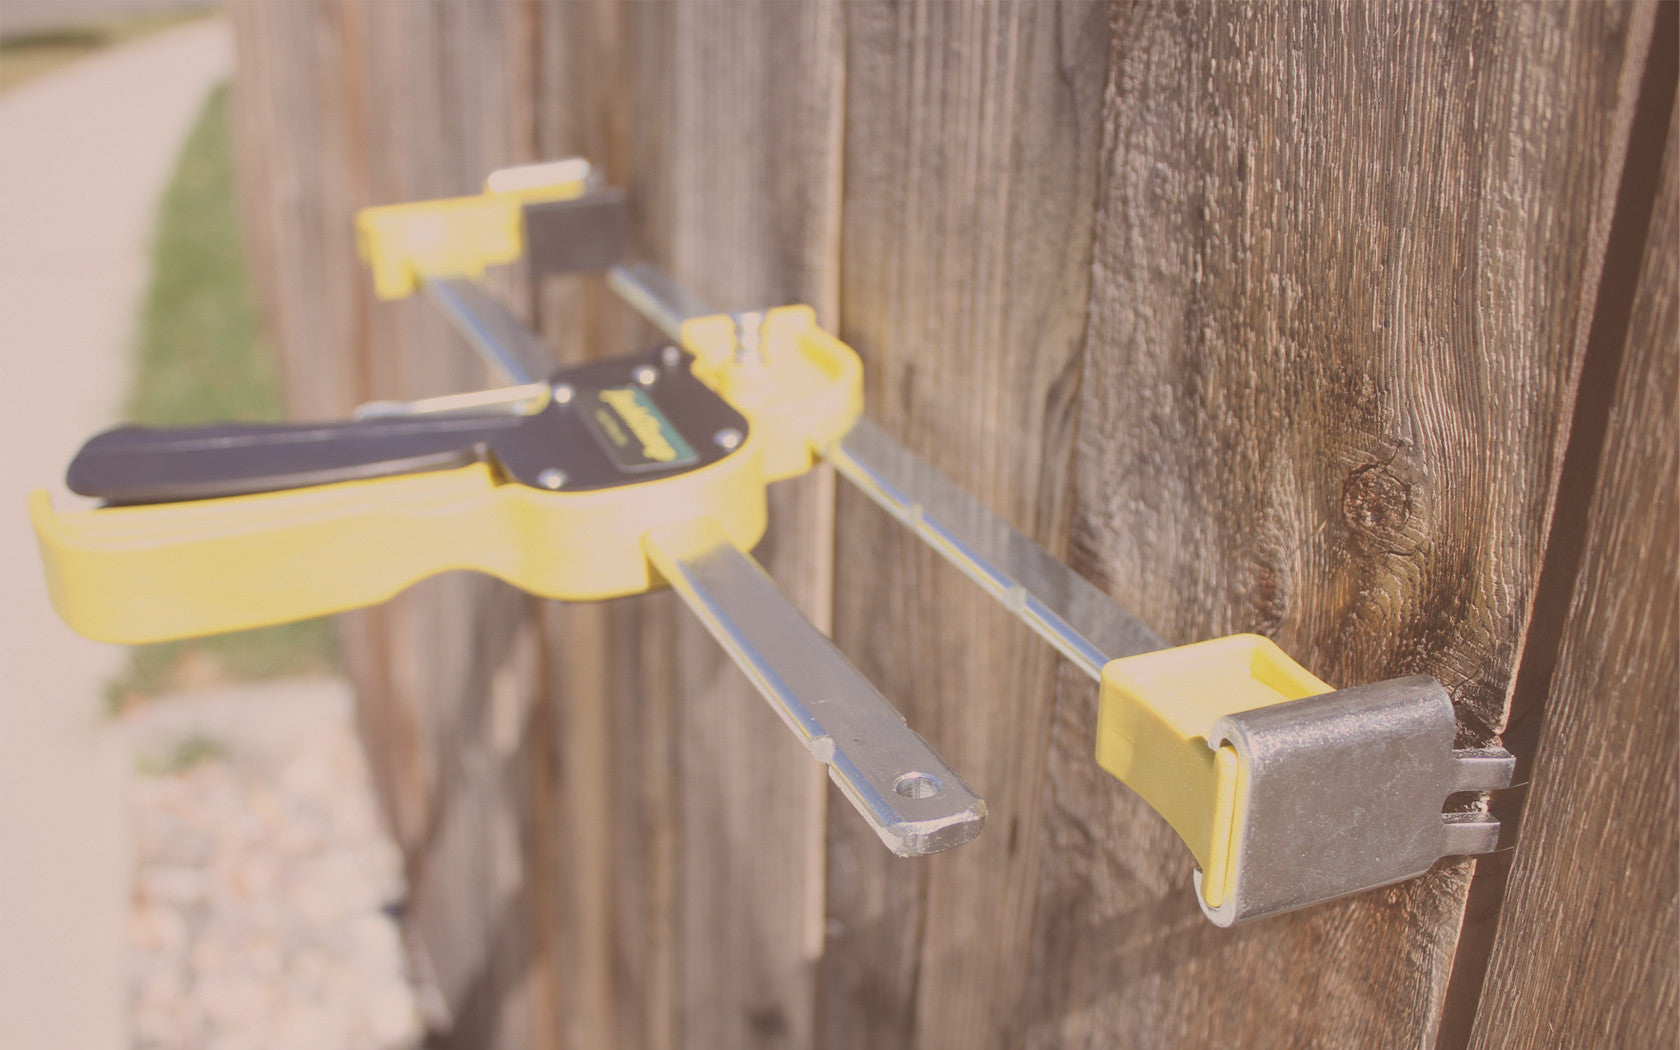 JackClamp Clamping a Fence